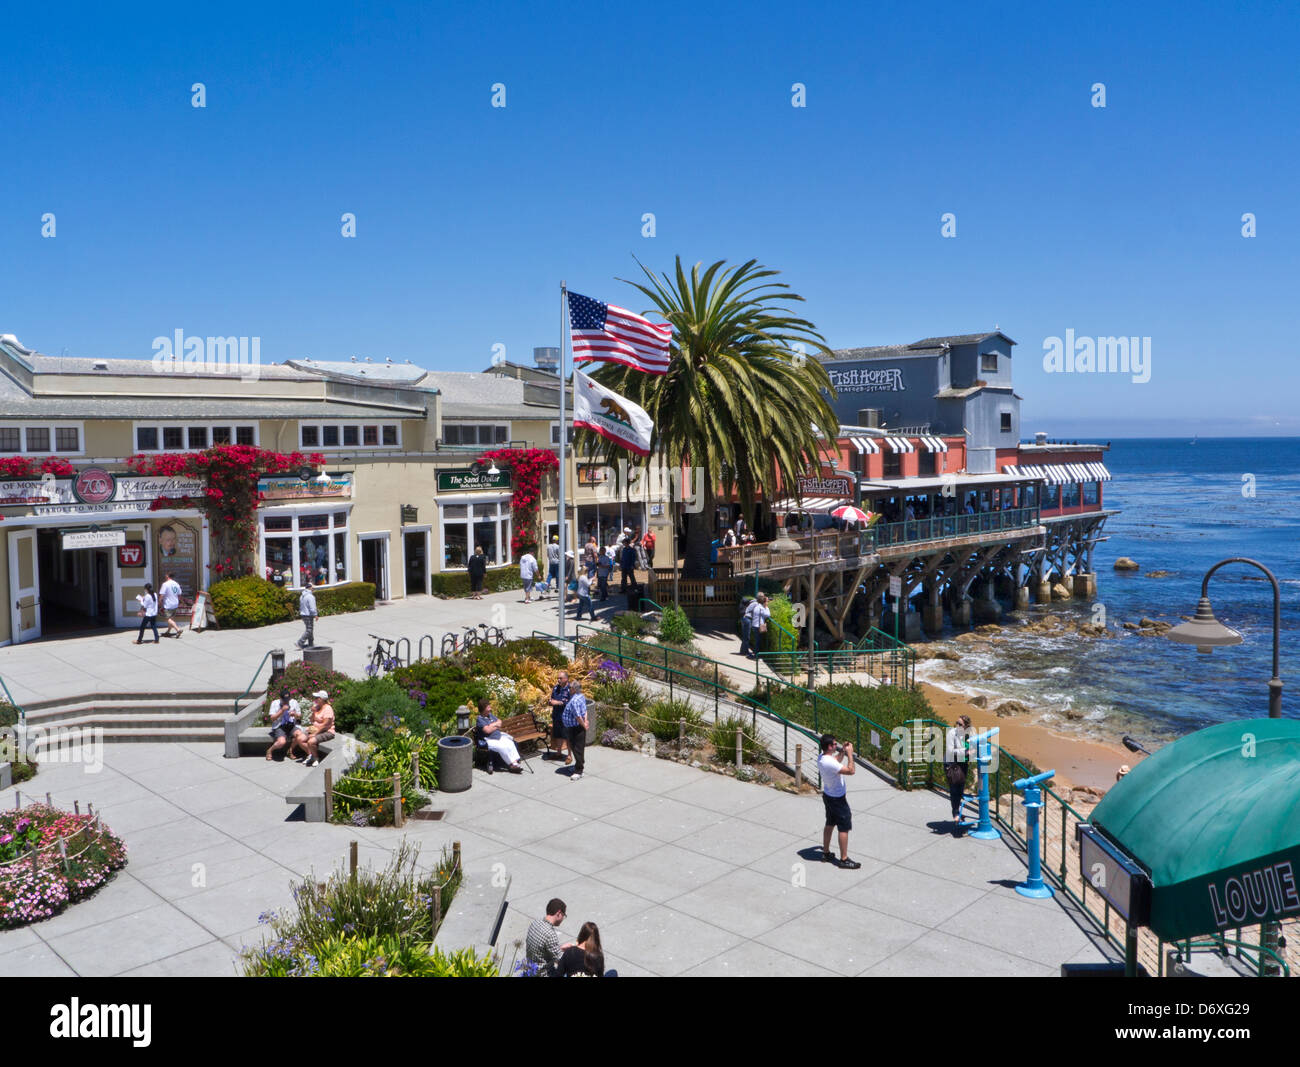 Cannery Row shops and restaurants complex Monterey California USA - Stock Image